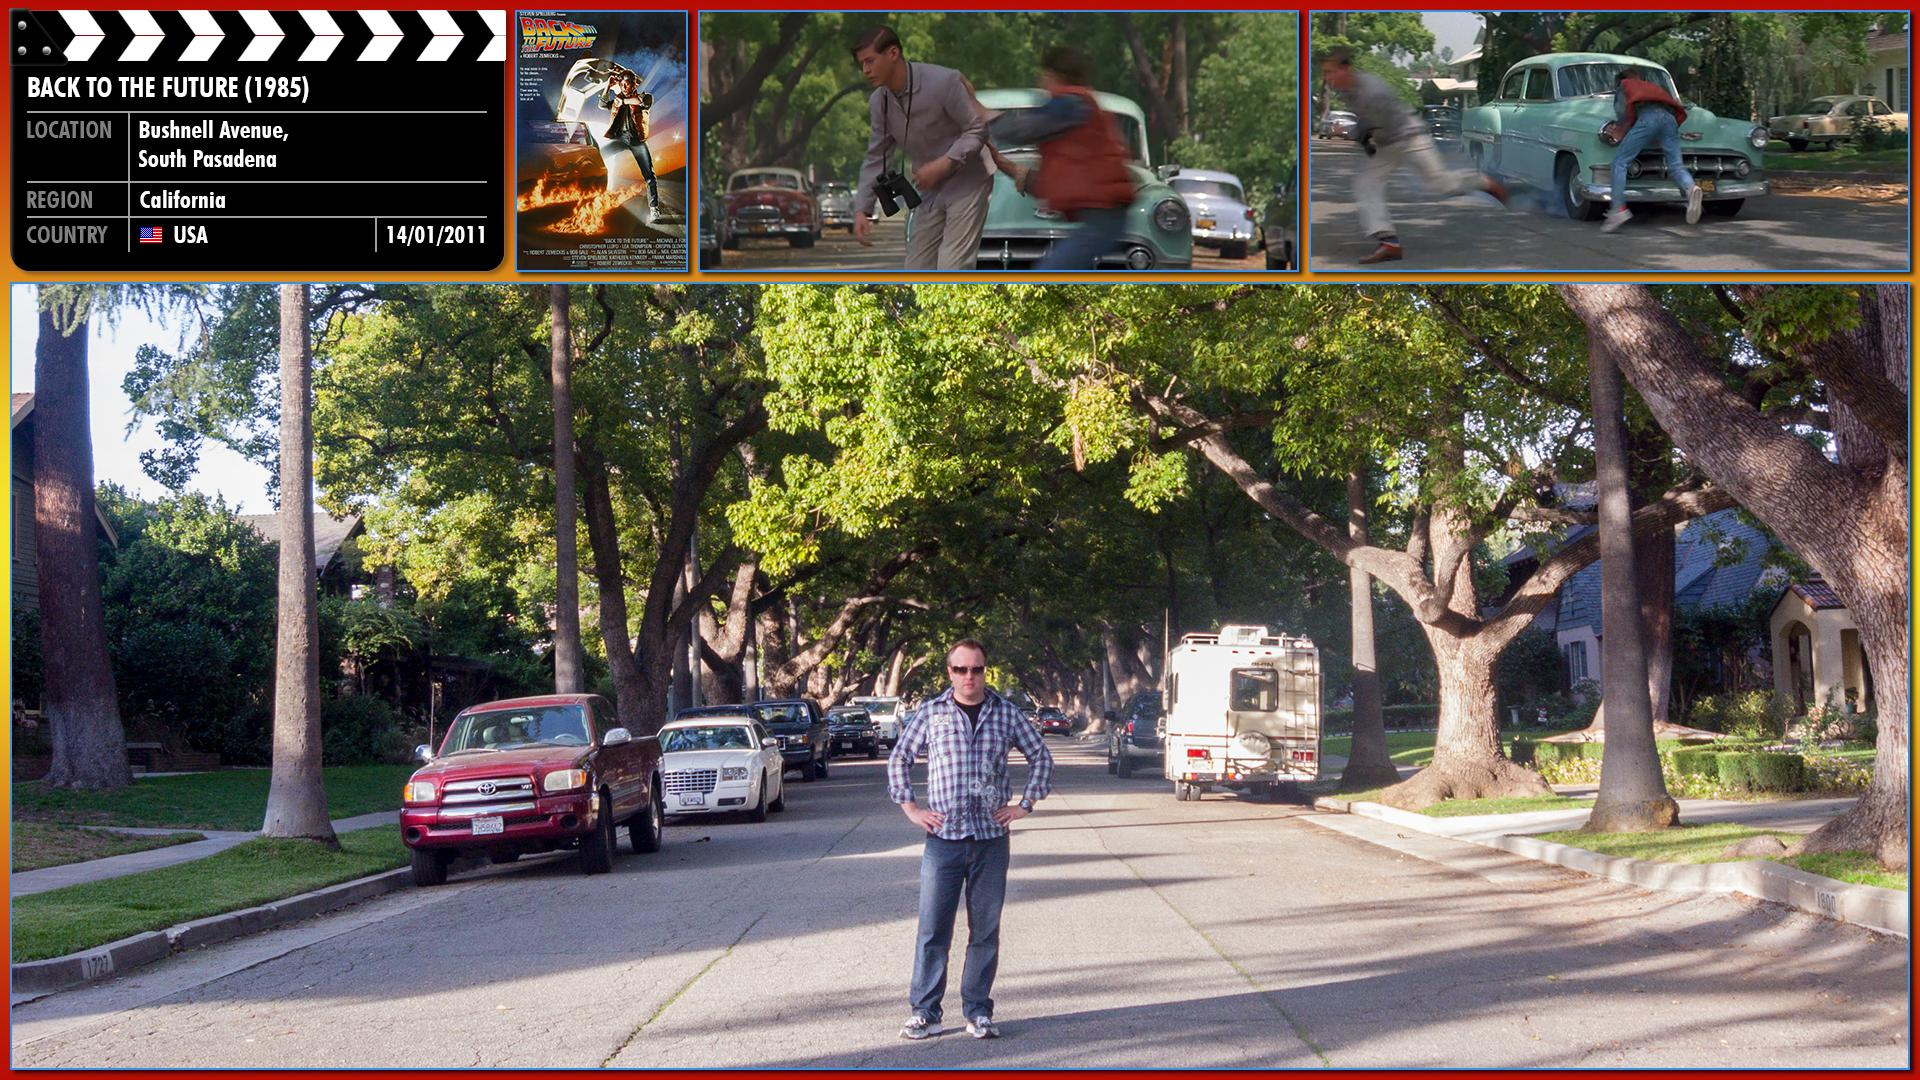 Filming location photo for Back to the Future (1985) 2 of 13